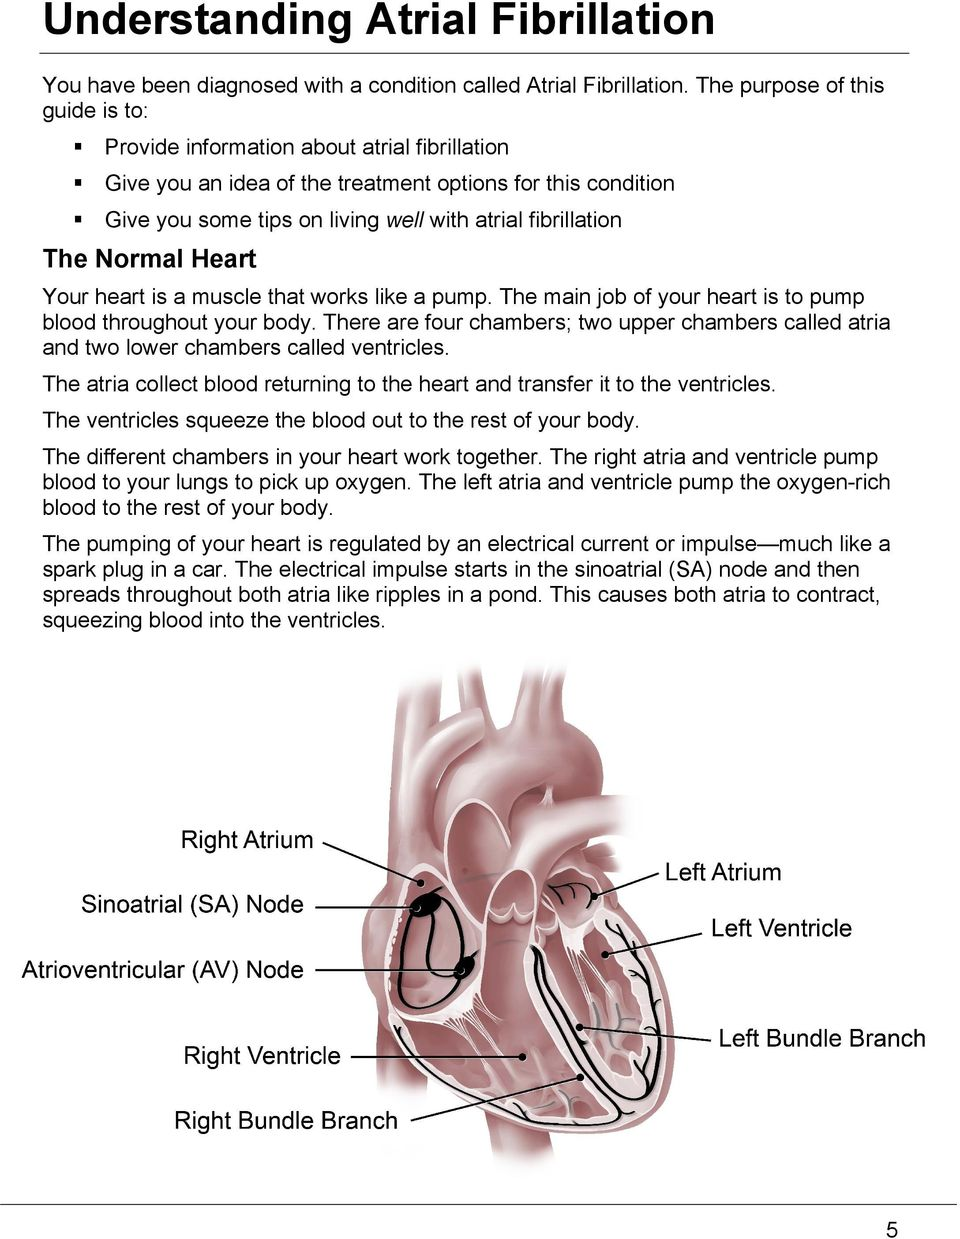 The Normal Heart Your heart is a muscle that works like a pump. The main job of your heart is to pump blood throughout your body.